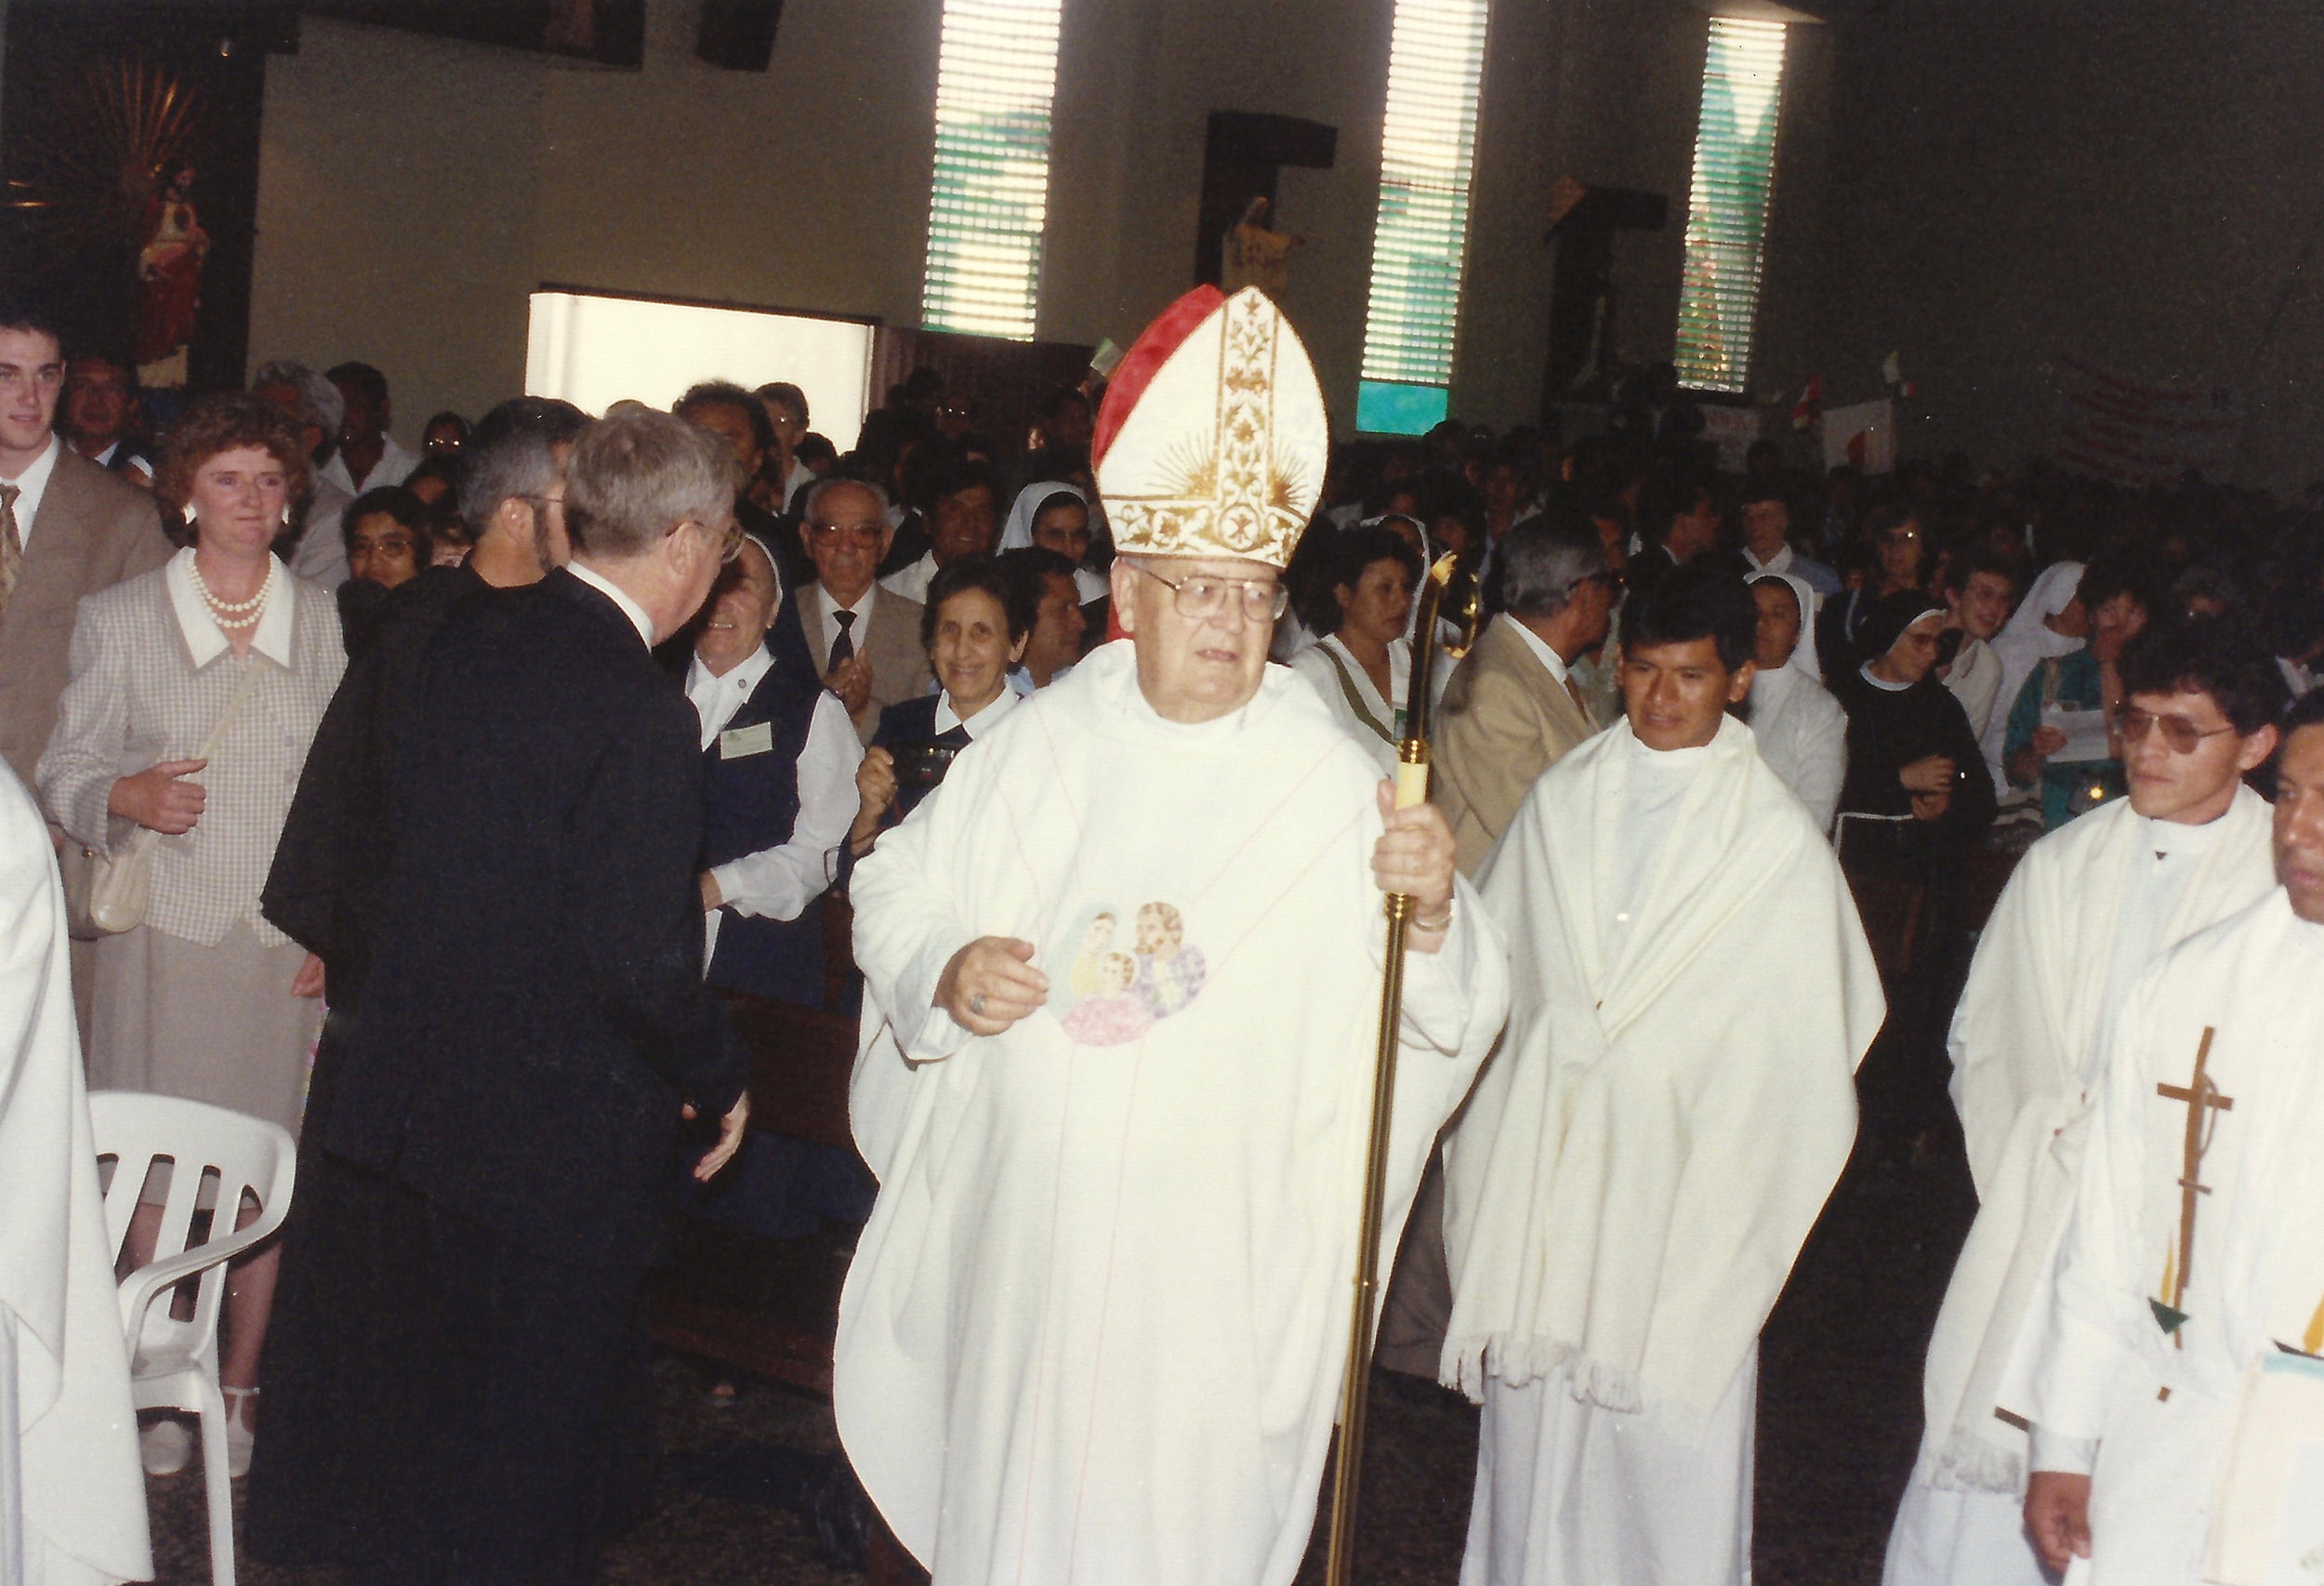 The late Bishop John McNabb, O.S.A., processing into Mass at the Holy Family Cathedral in Chulucanas, Peru